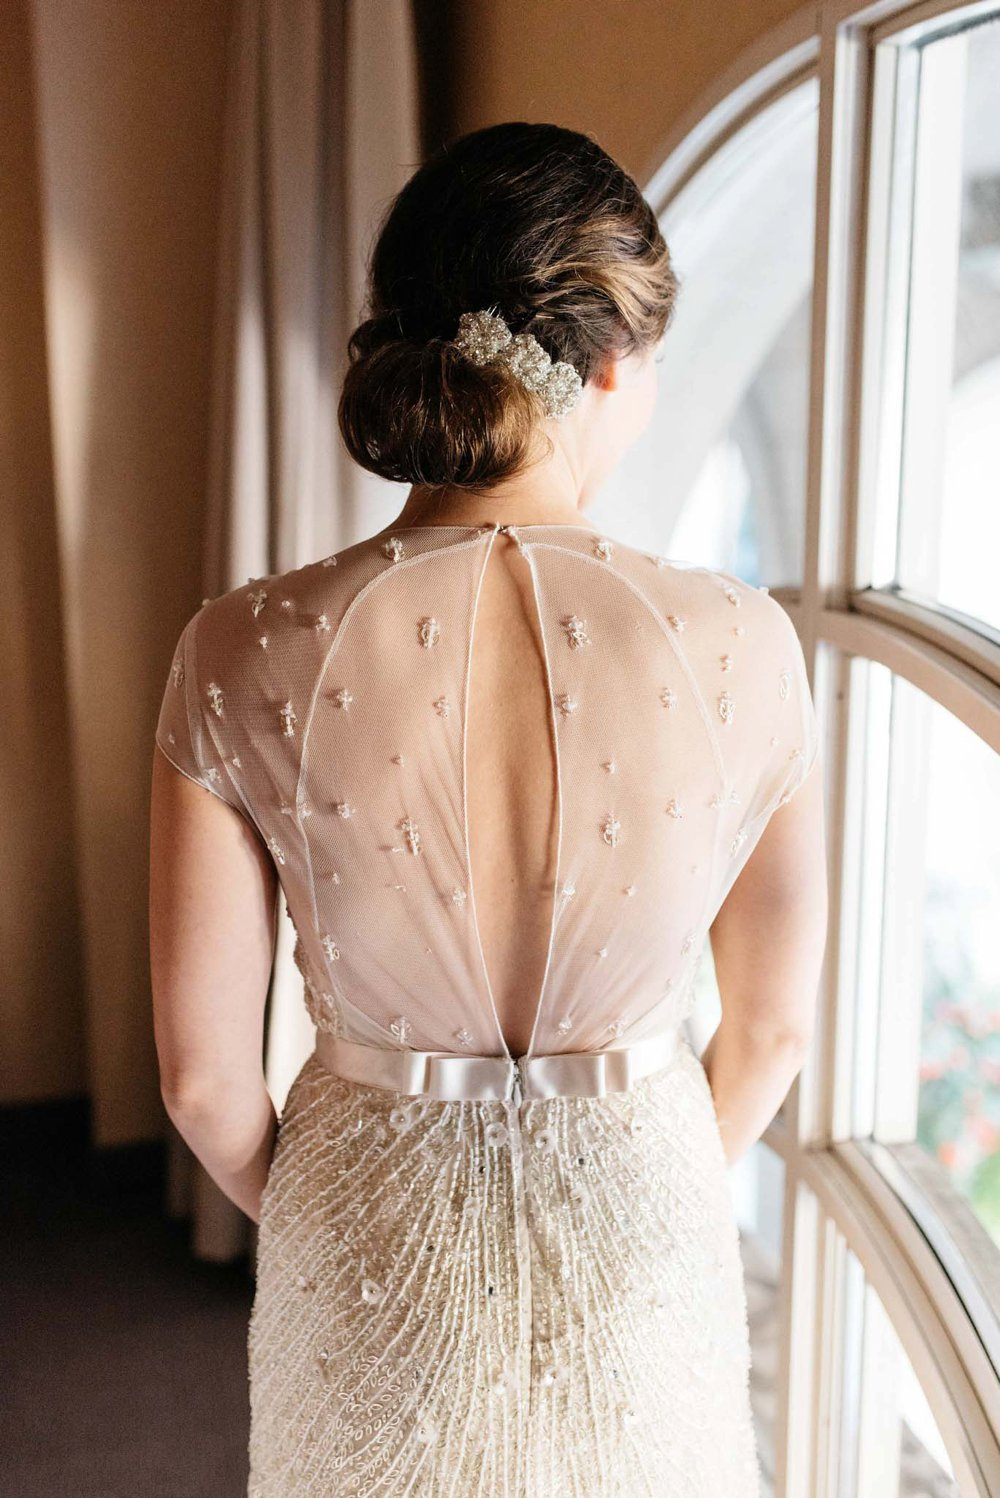 Jenny Packham keyhole wedding dress | Olive Photography